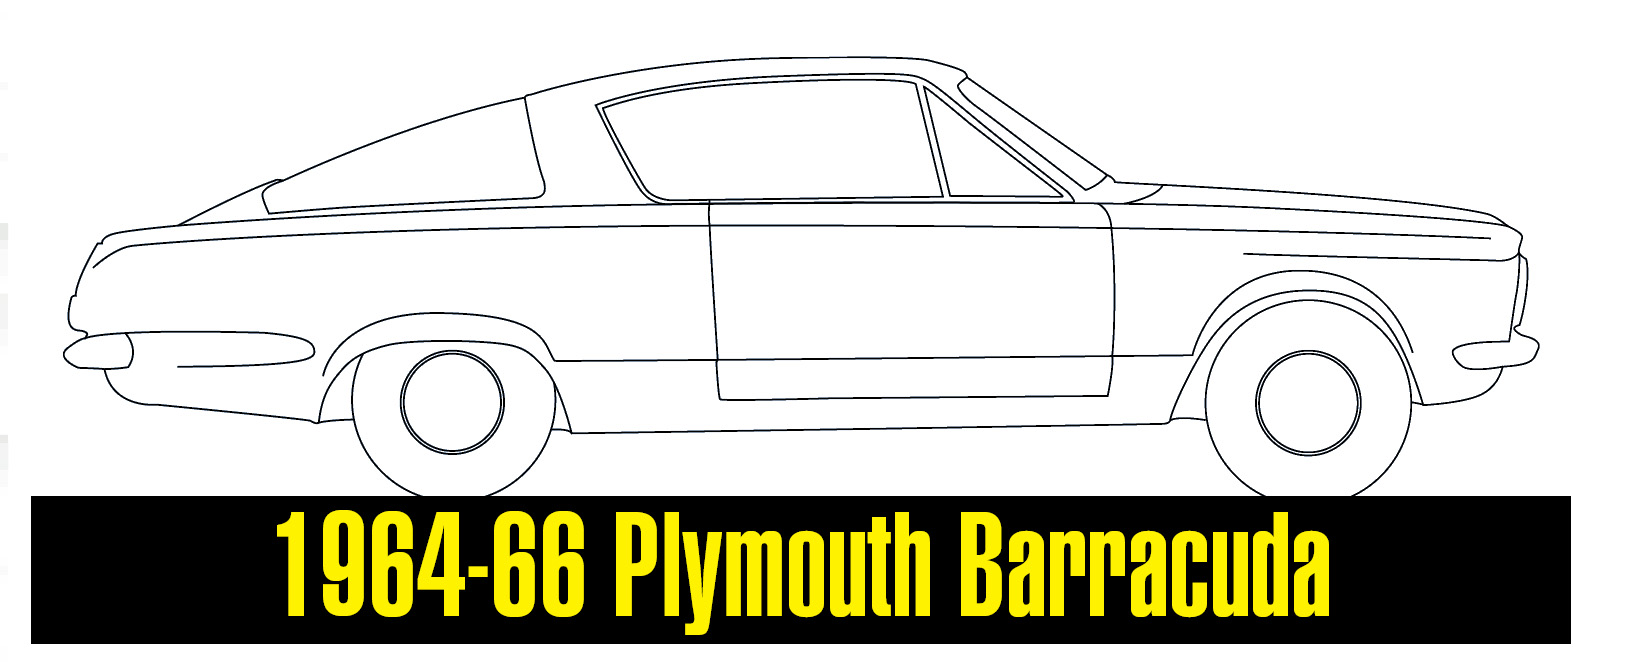 Classic_Plymouth_64_Barracuda